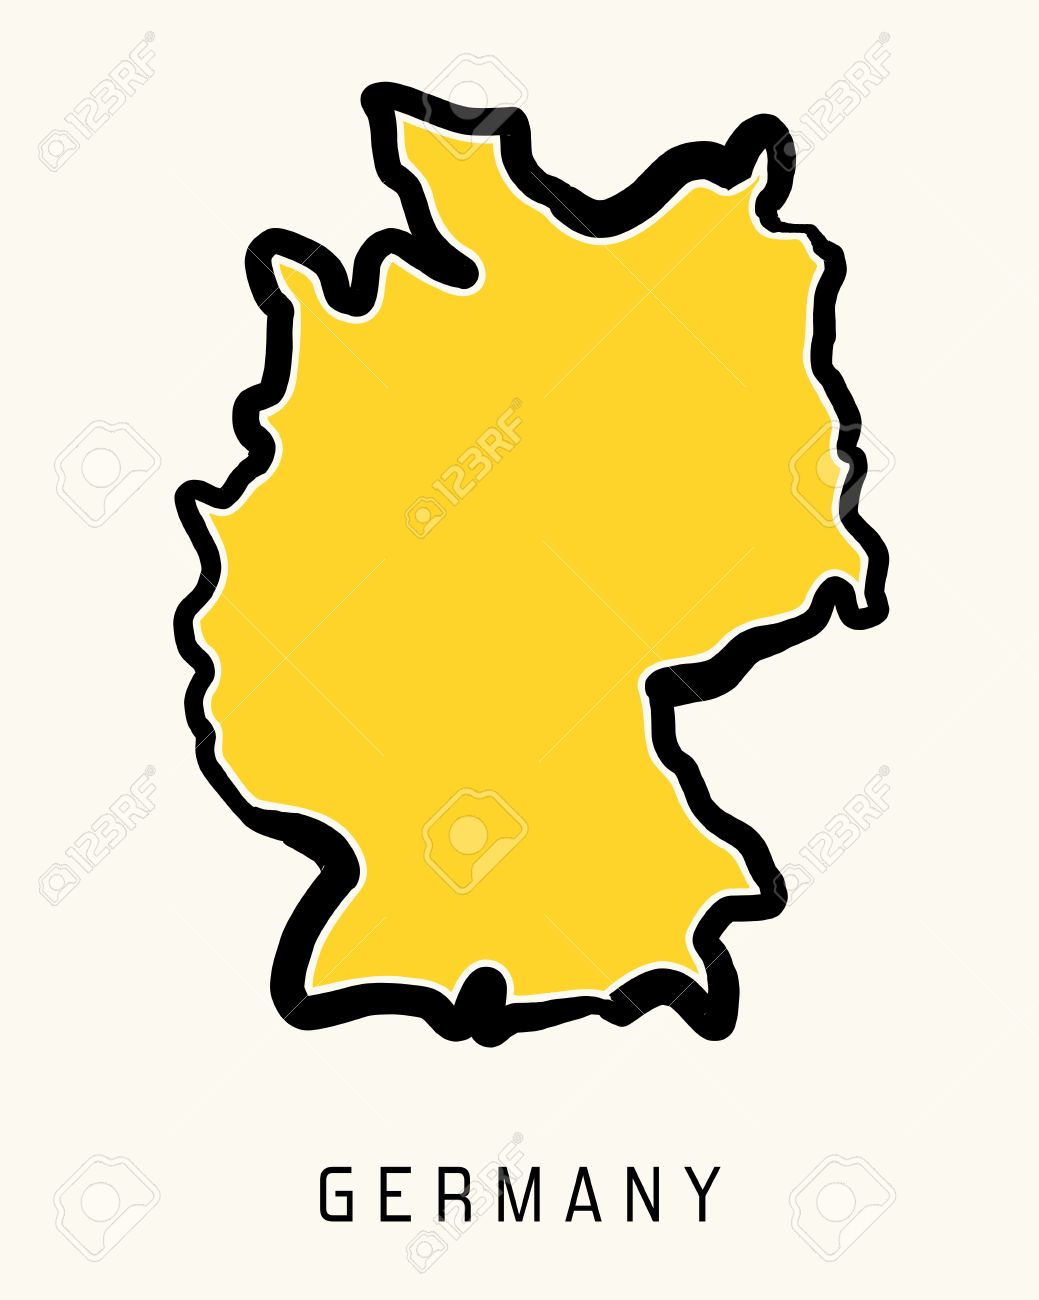 Germany Simple Map Outline Simplified Country Shape Map Vector - Germany map simple